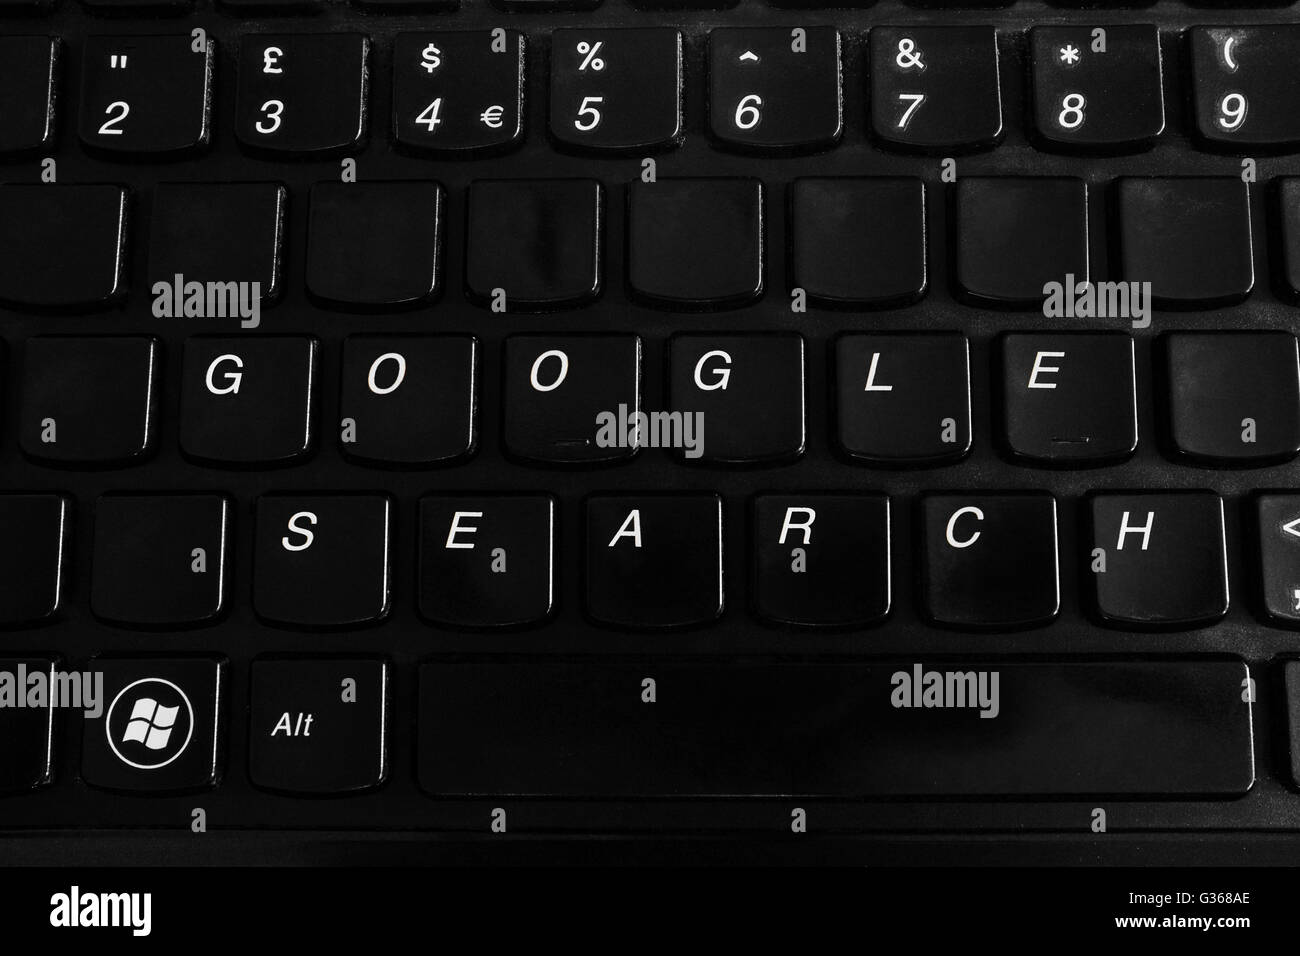 A black laptop keyboard with Google search on it. - Stock Image